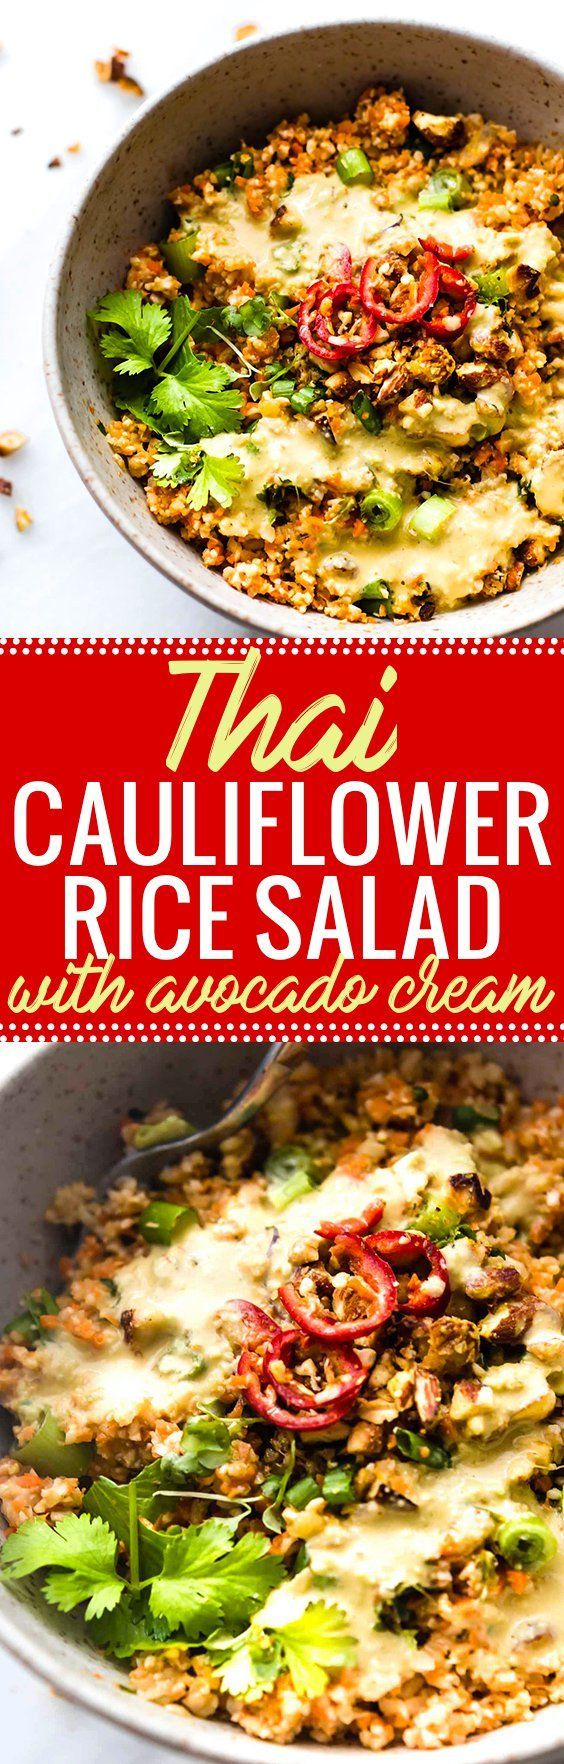 Colorful Thai Cauliflower Rice Salad is packed full of flavor, spice, and made easy! Thai spiced mixed into a  Carrot Cauliflower Rice Salad with Avocado Cream Dressing! It's both Paleo, Vegan, and made in under 30 minutes. Perfect as is or with a protein